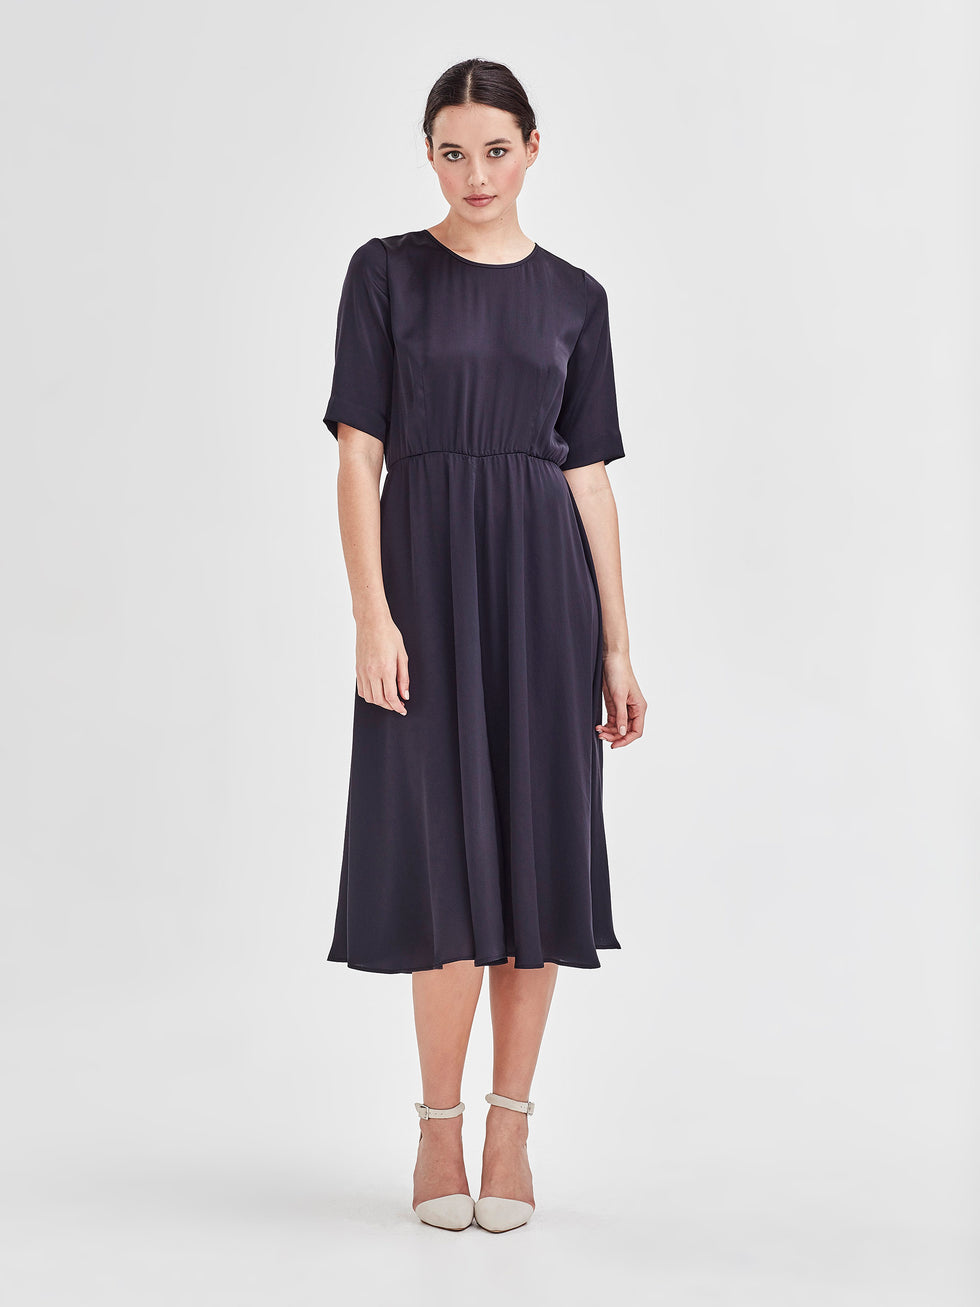 Alba Dress (Satin Triacetate) Sky 2